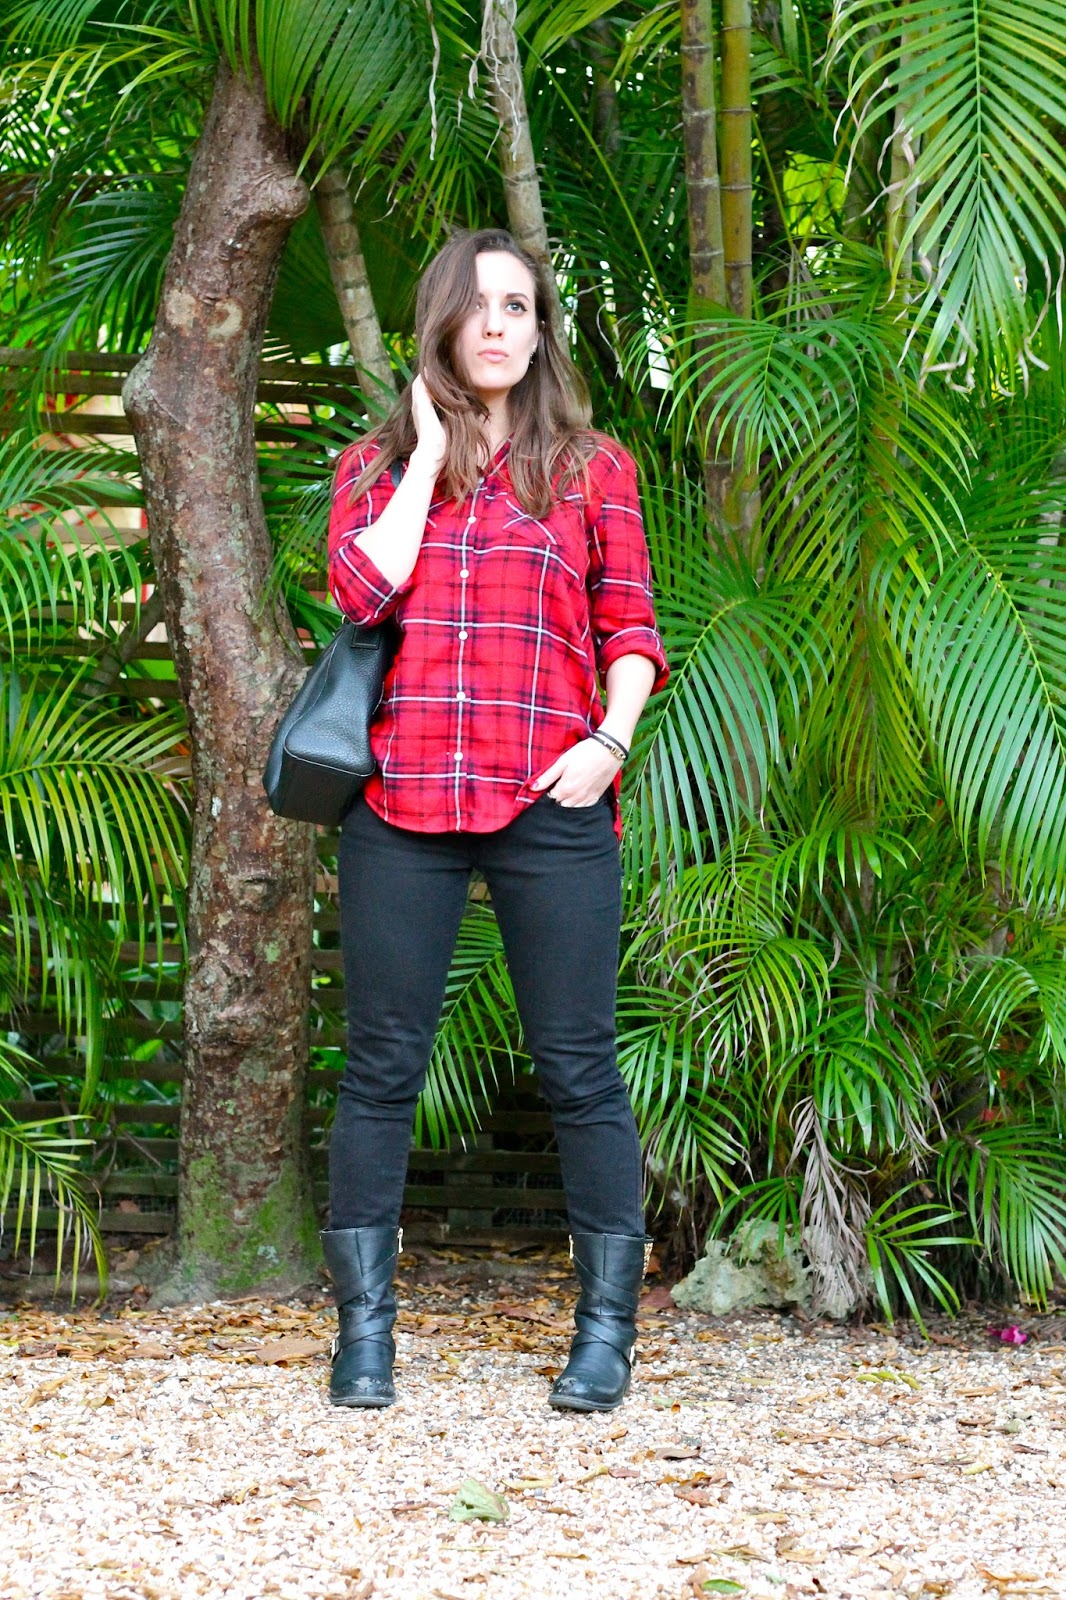 express, Levi's, jessica simpson, target, Kate Spade, BCBGeneration, fashion blogger, ootd, outfit ideas, winter fashion, fall fashion, hipster style, Miami fashion blogger, fblogger, style blog, fashion blog, Miami style